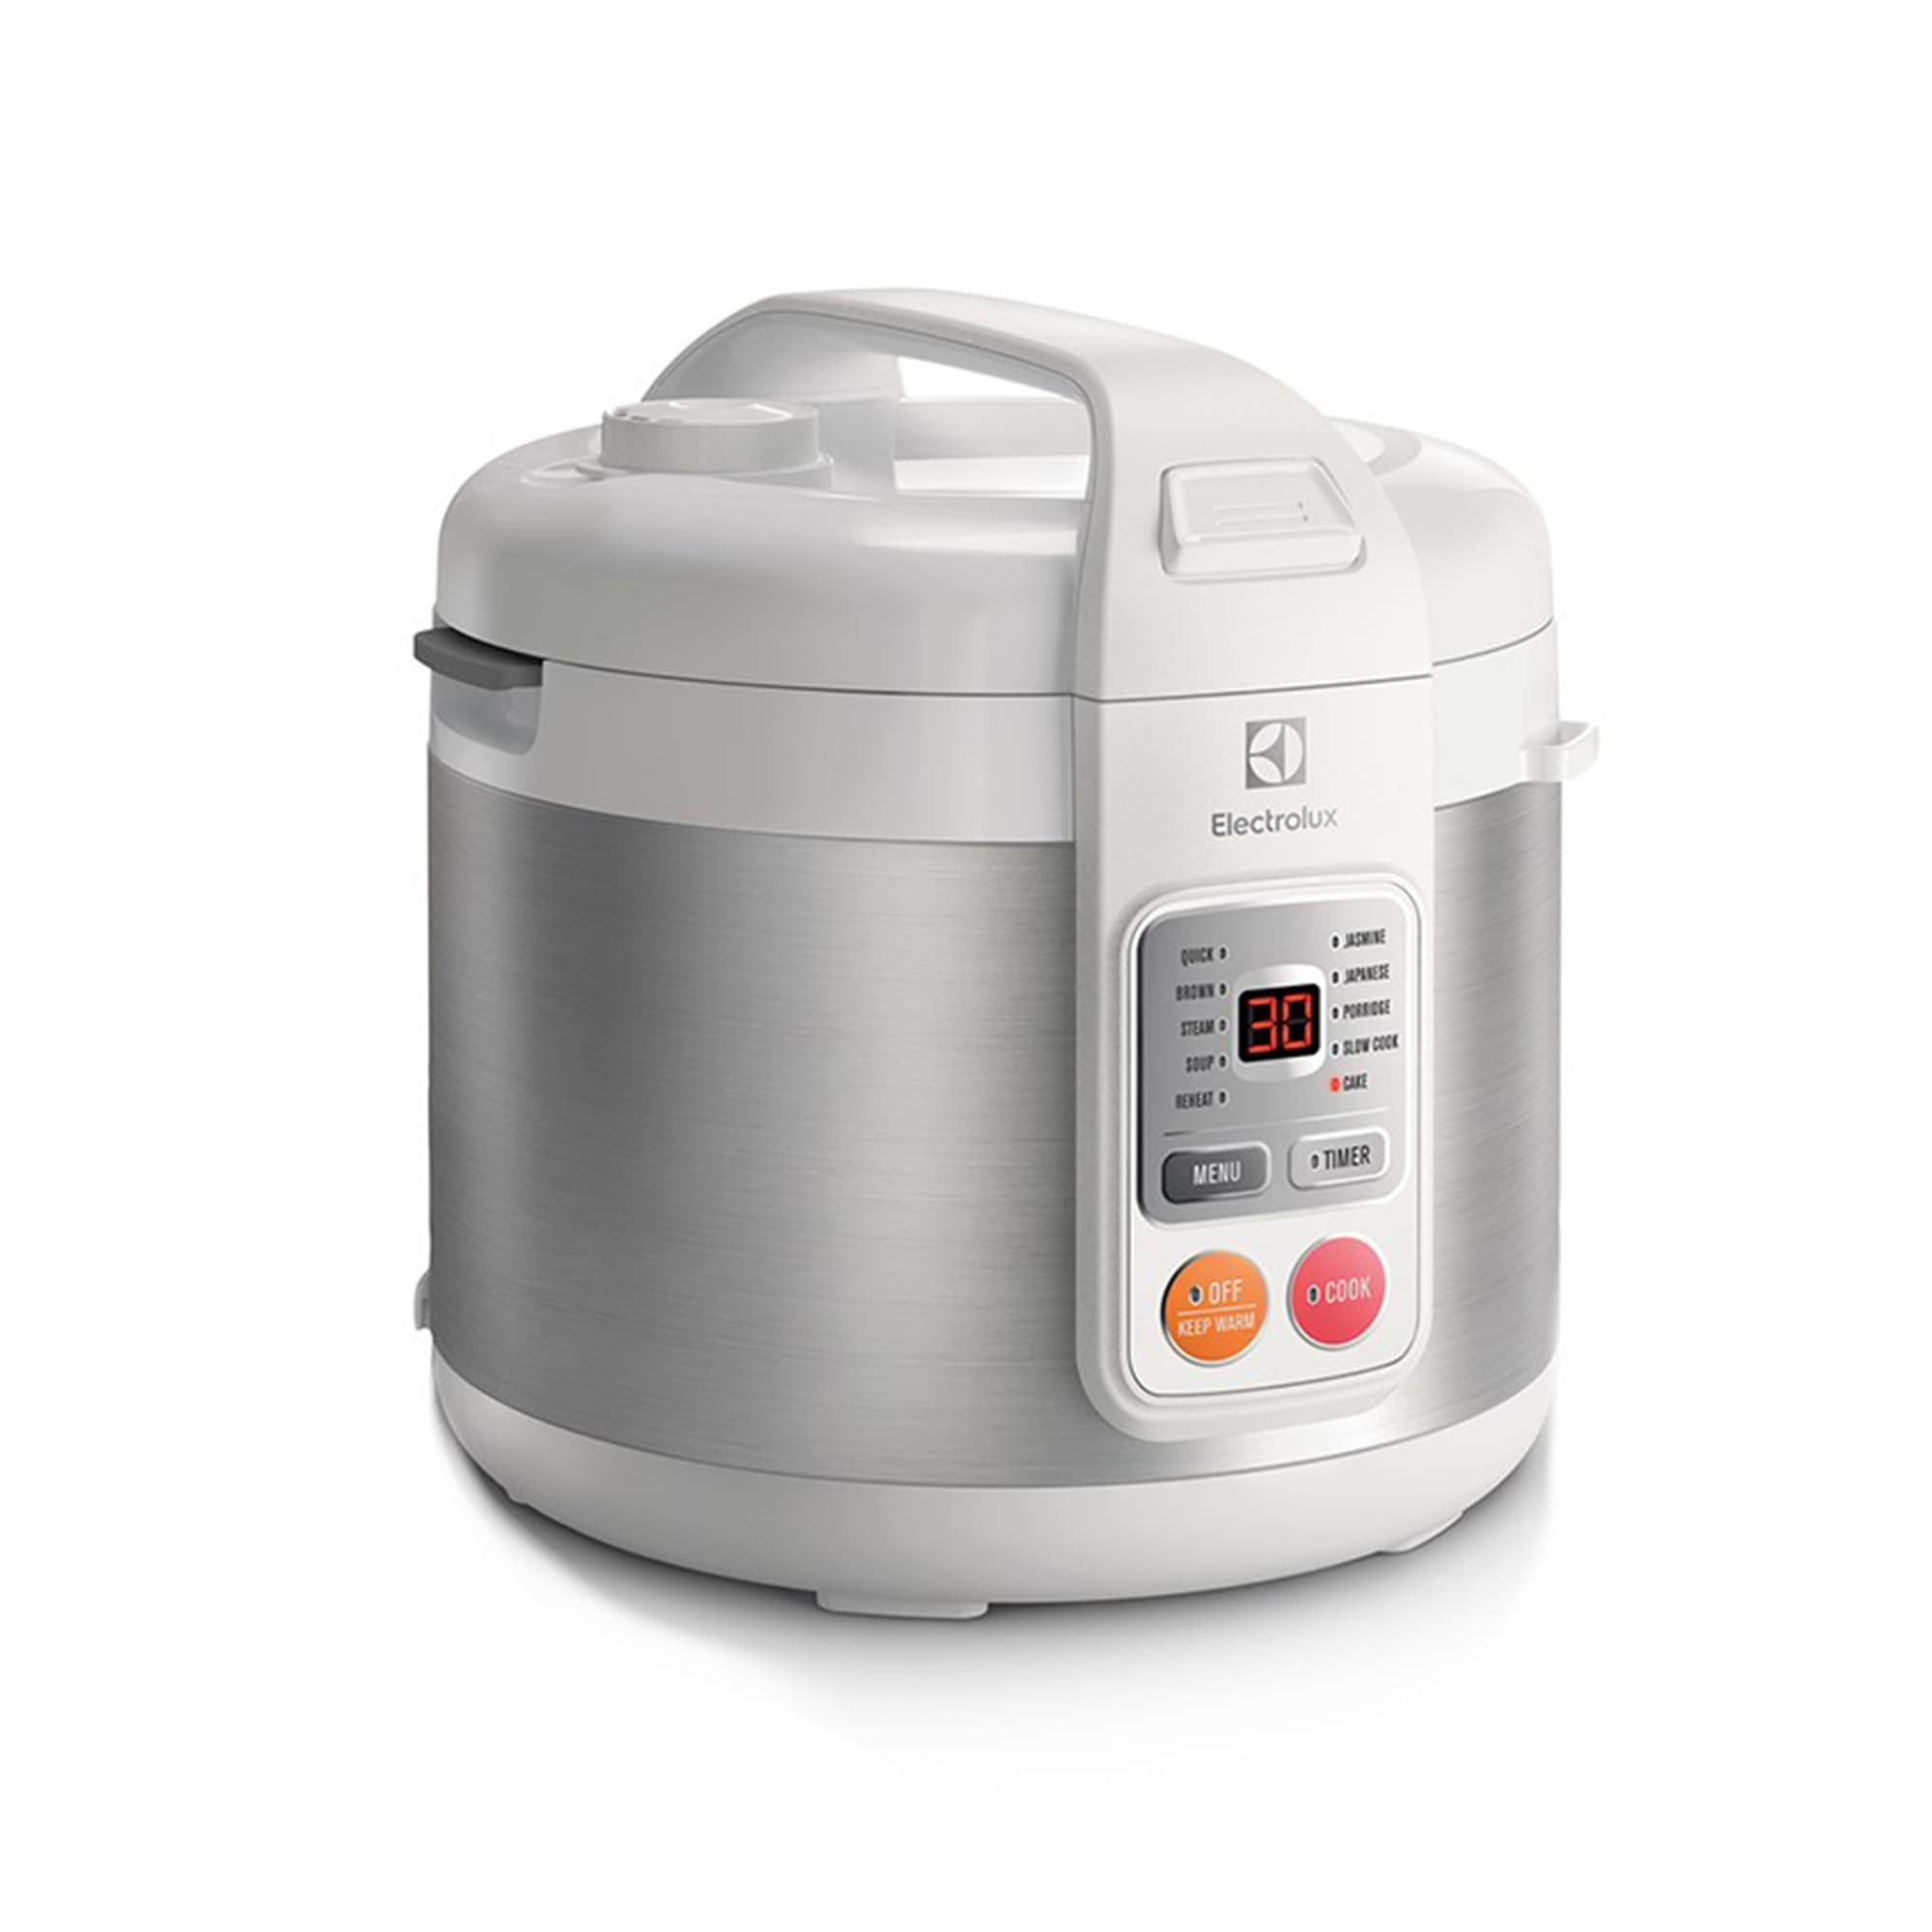 Electrolux Smart Rice Cooker ERC3505 (end 5/2/2020 4:41 PM)